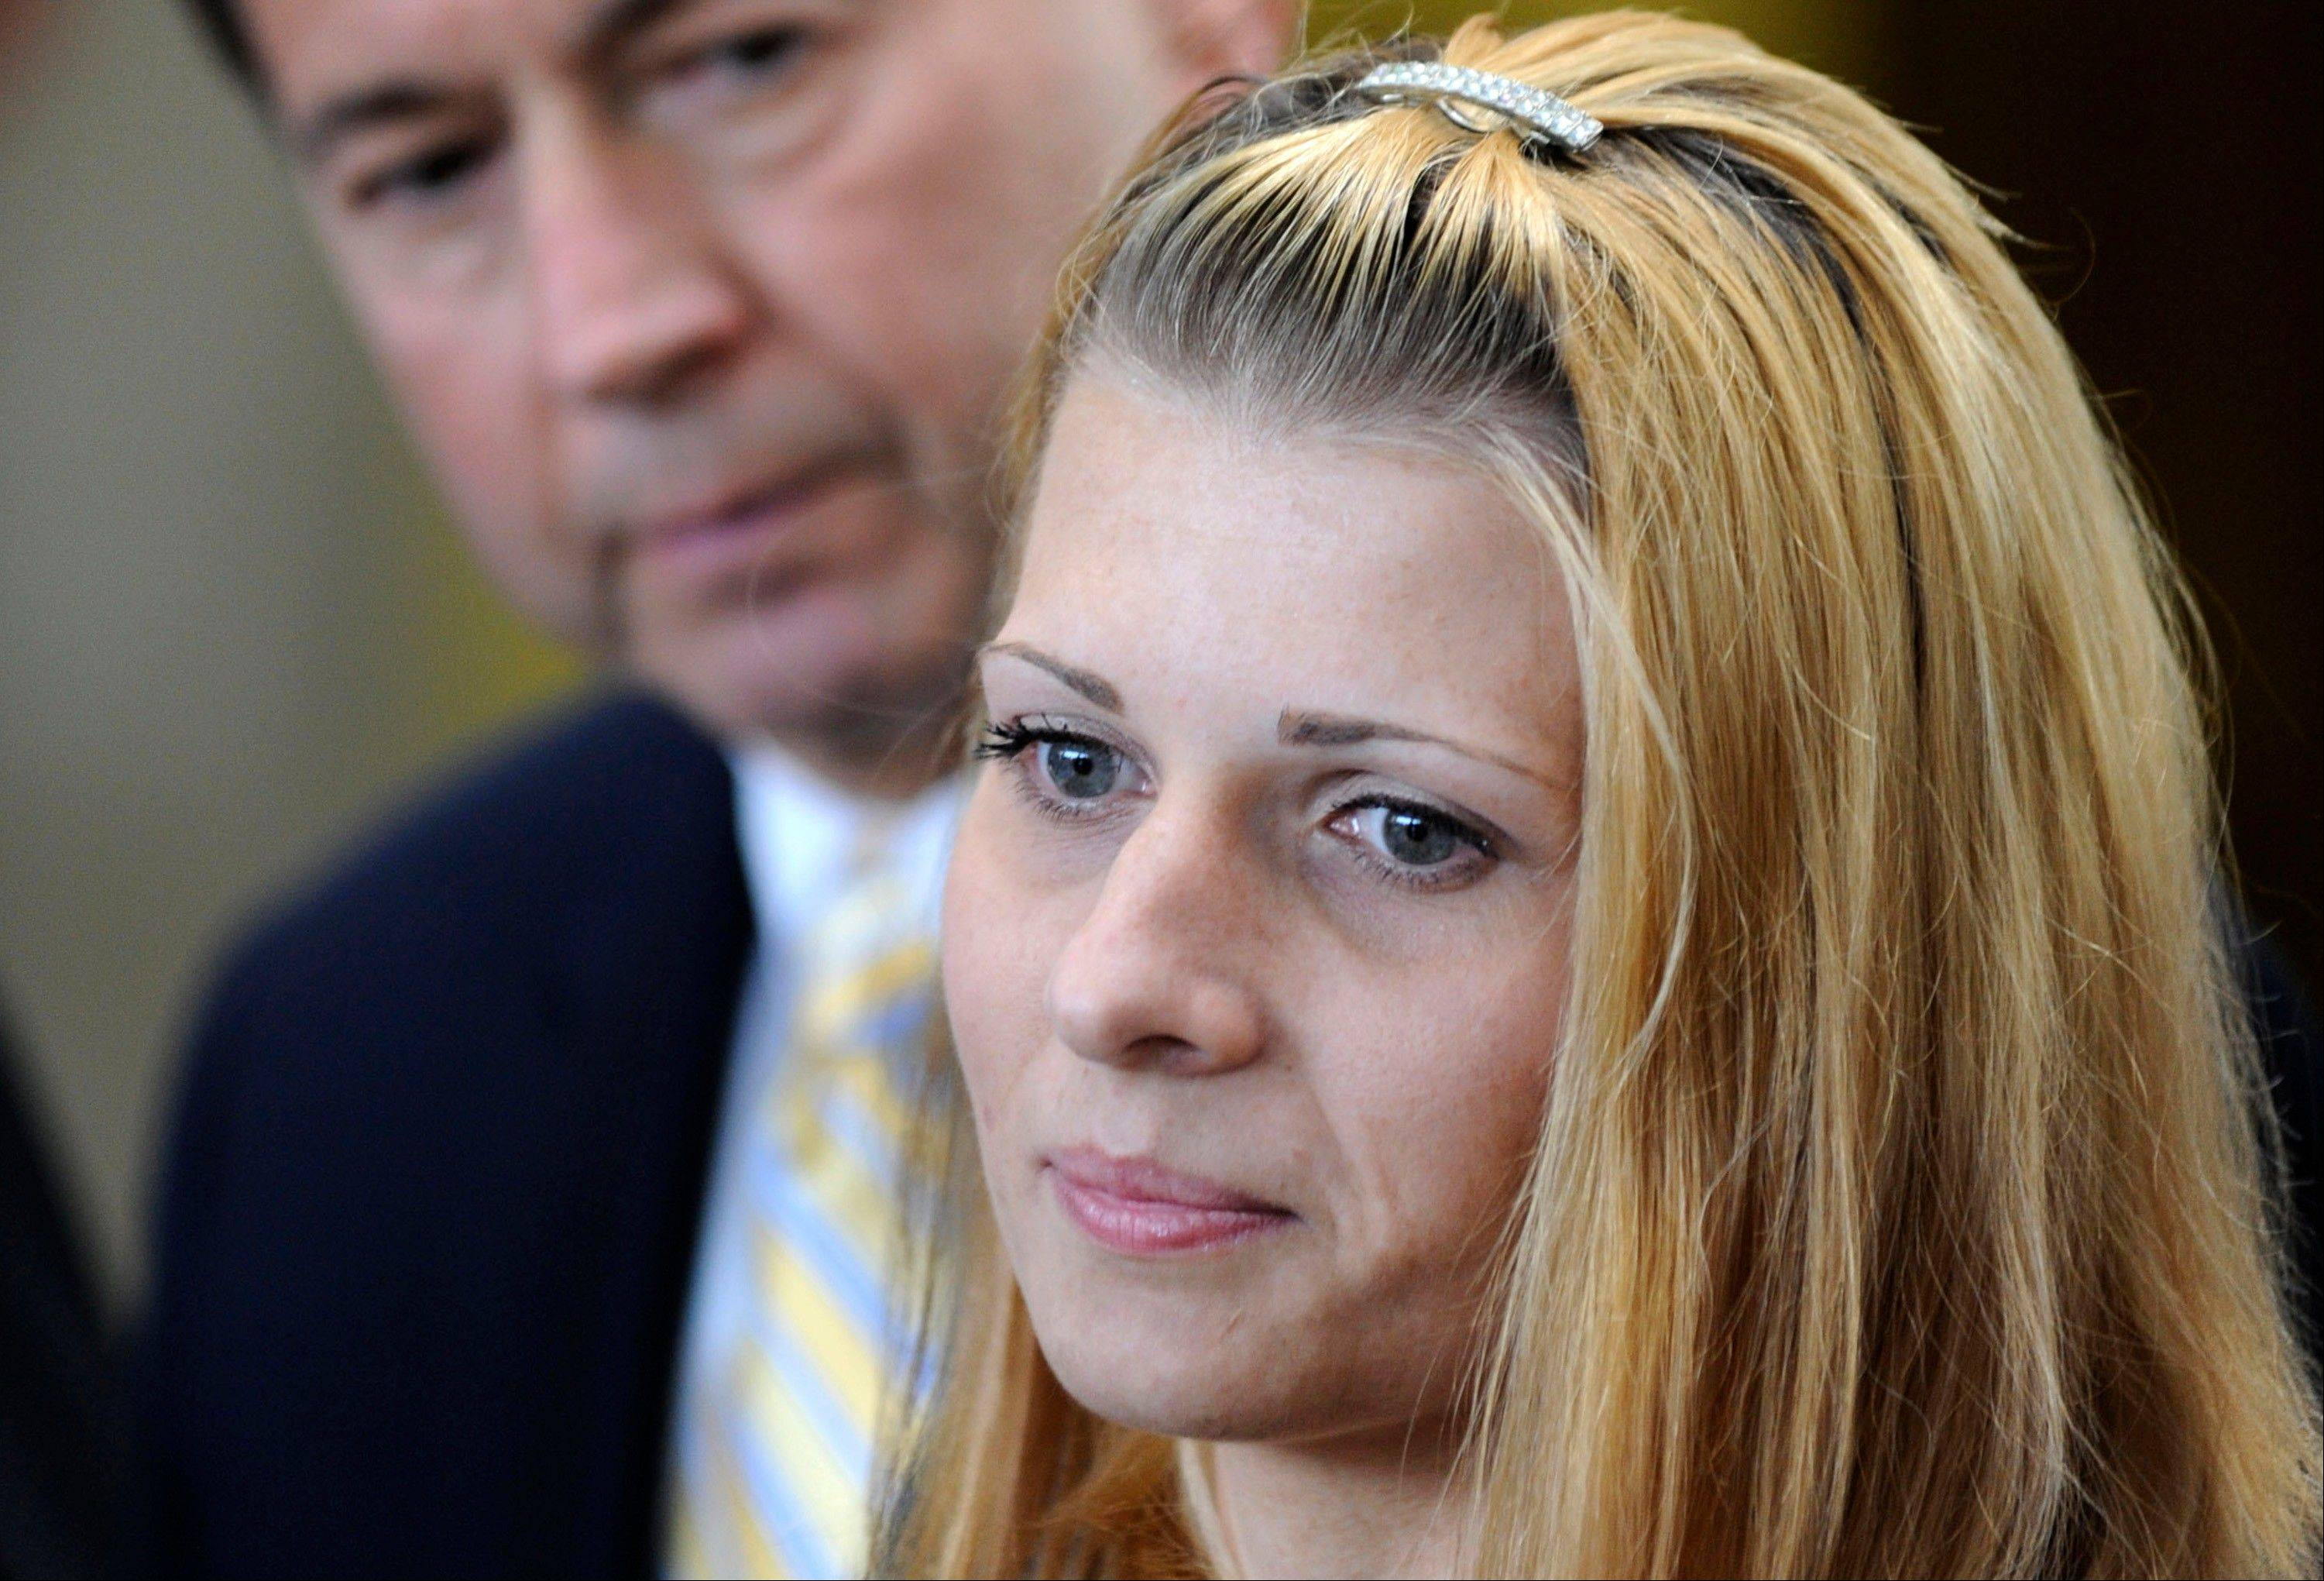 Bartender Karolina Obrycka, right, with attorney Terry Ekl, was the victim of a beating by an off-duty Chicago police officer.